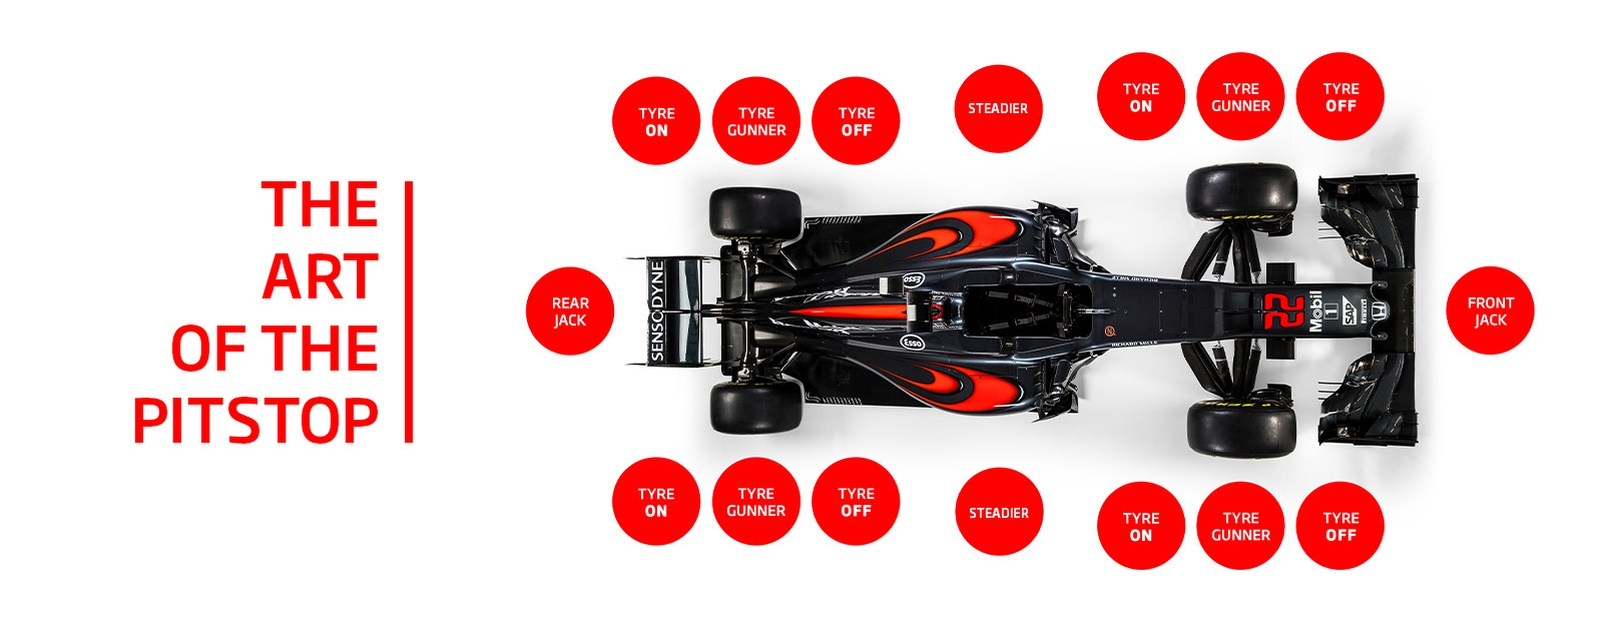 Fastest Car In The World Wallpaper Mclaren Formula 1 The Art Of The F1 Pitstop